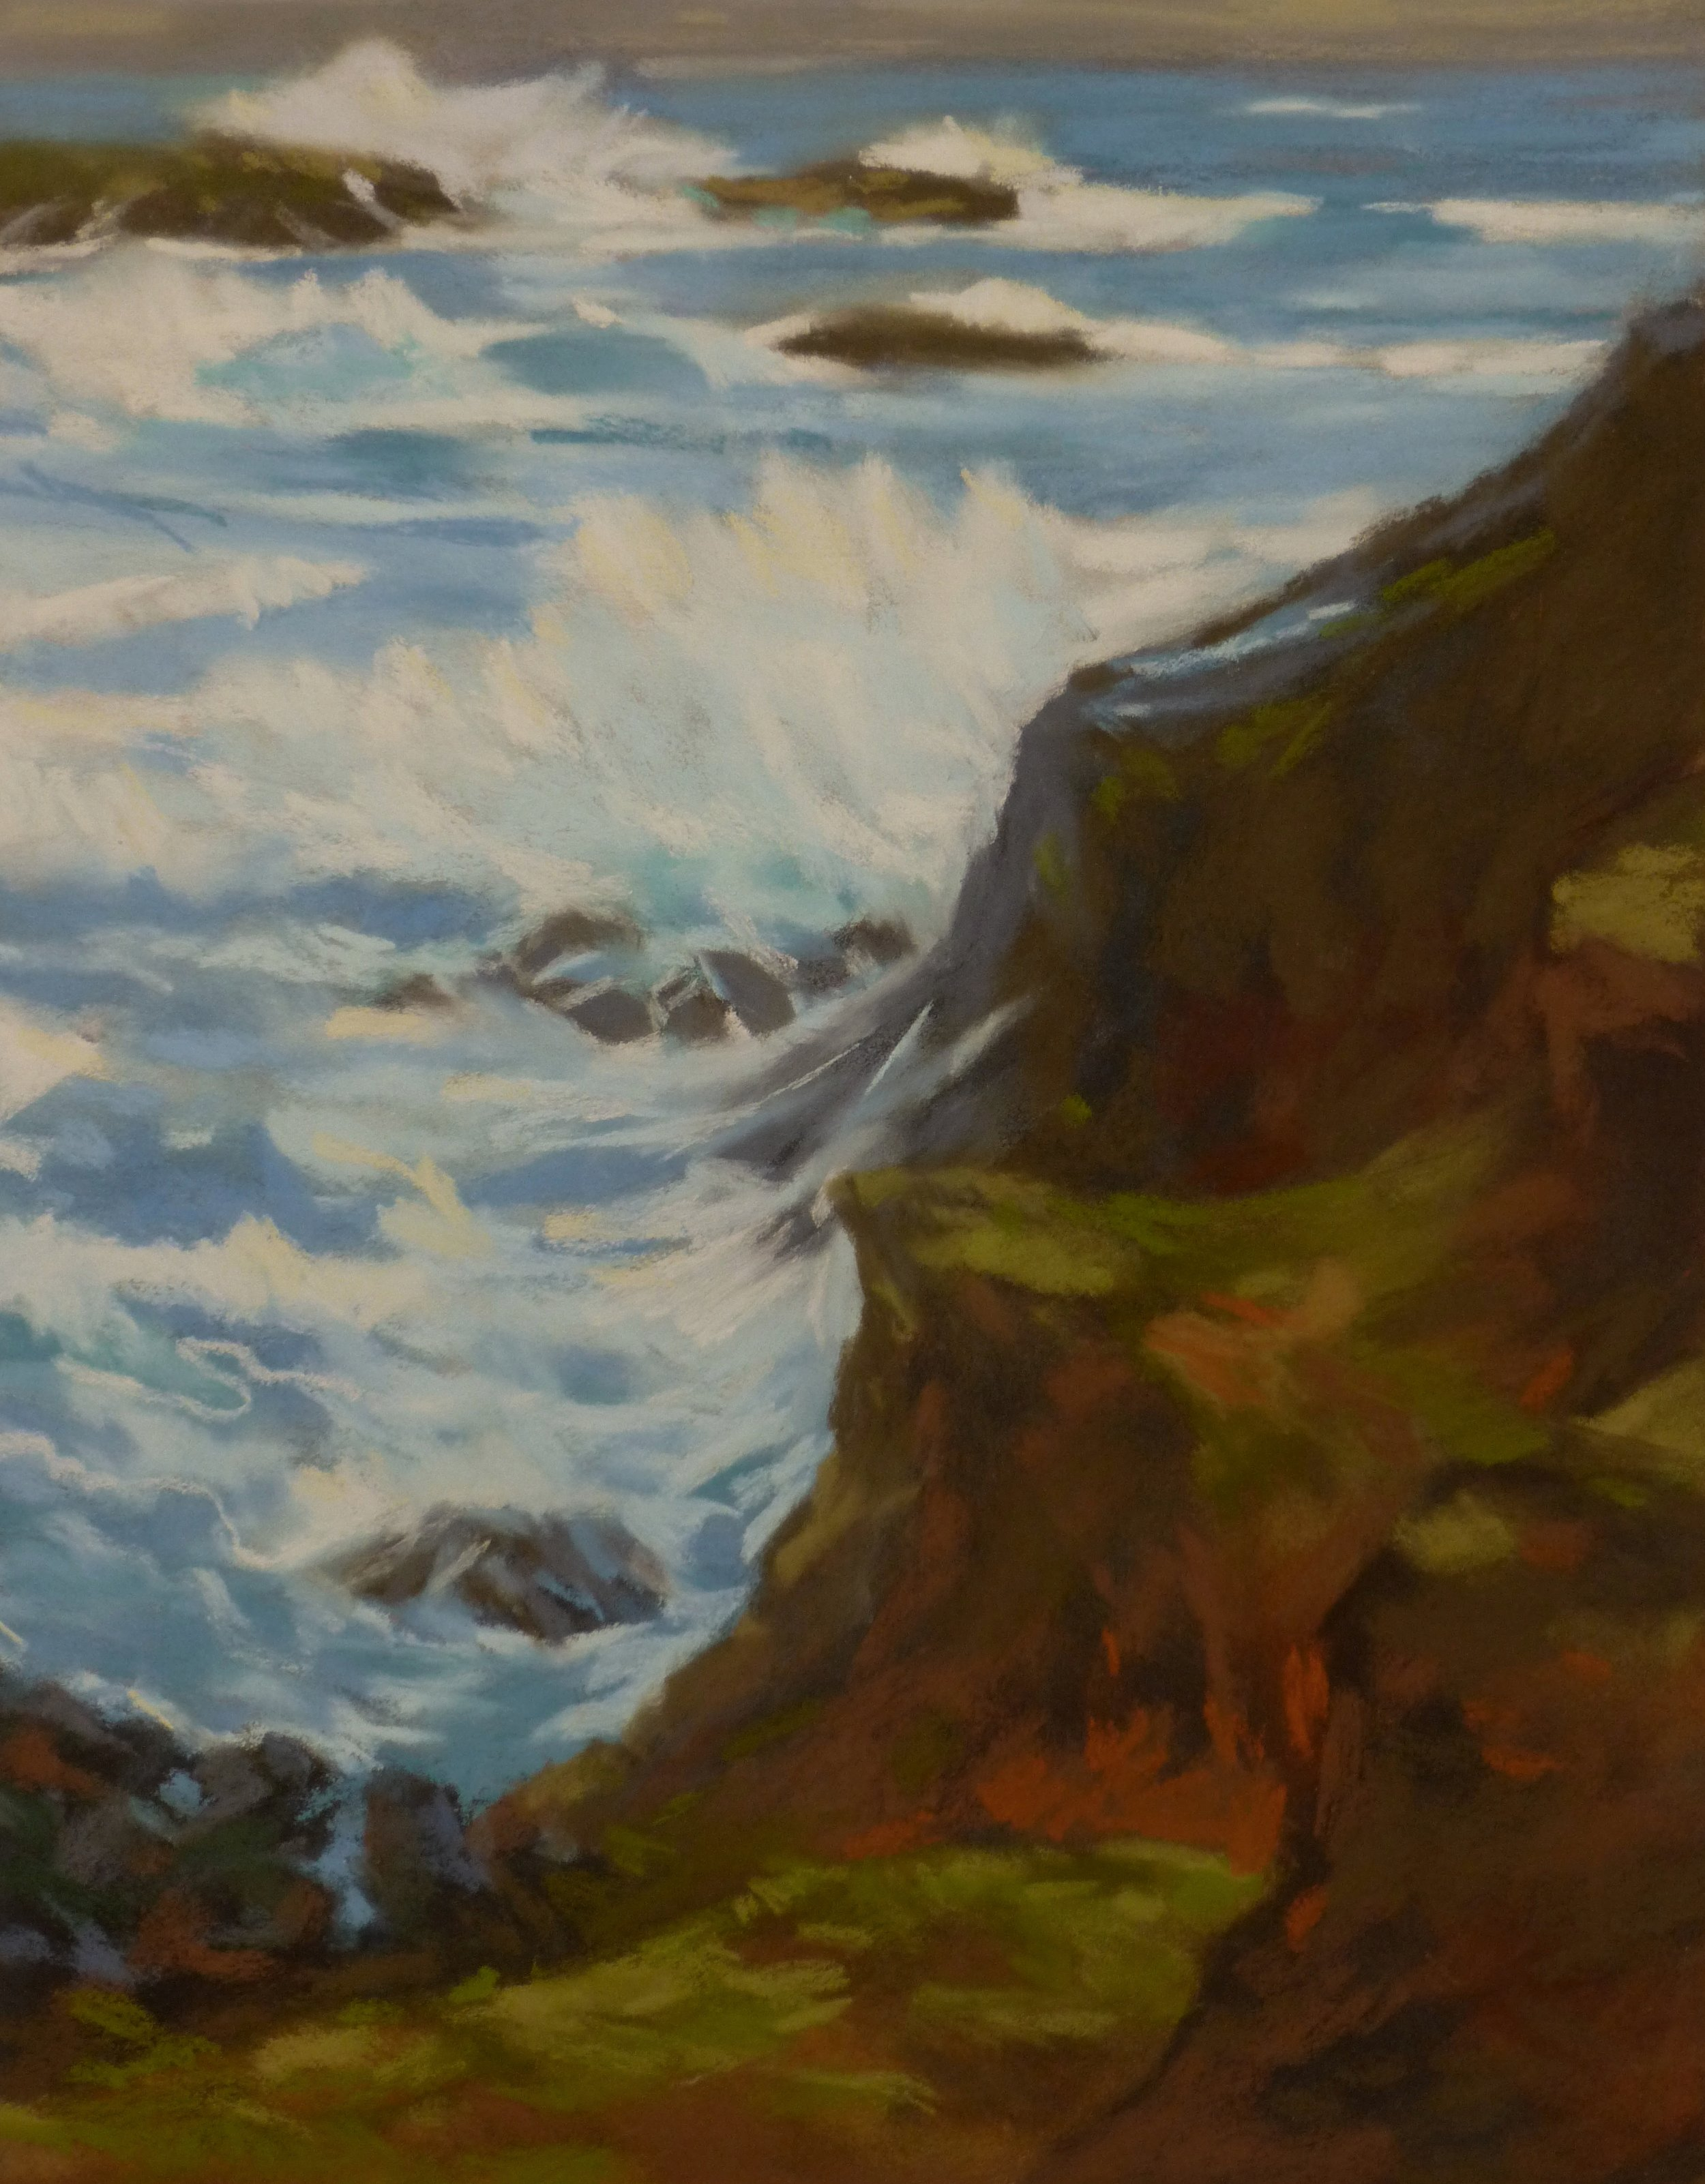 Wave Watching   Pastel on Copper, 14 x 18 in   25.25 x 29.5 in framed   $1,800